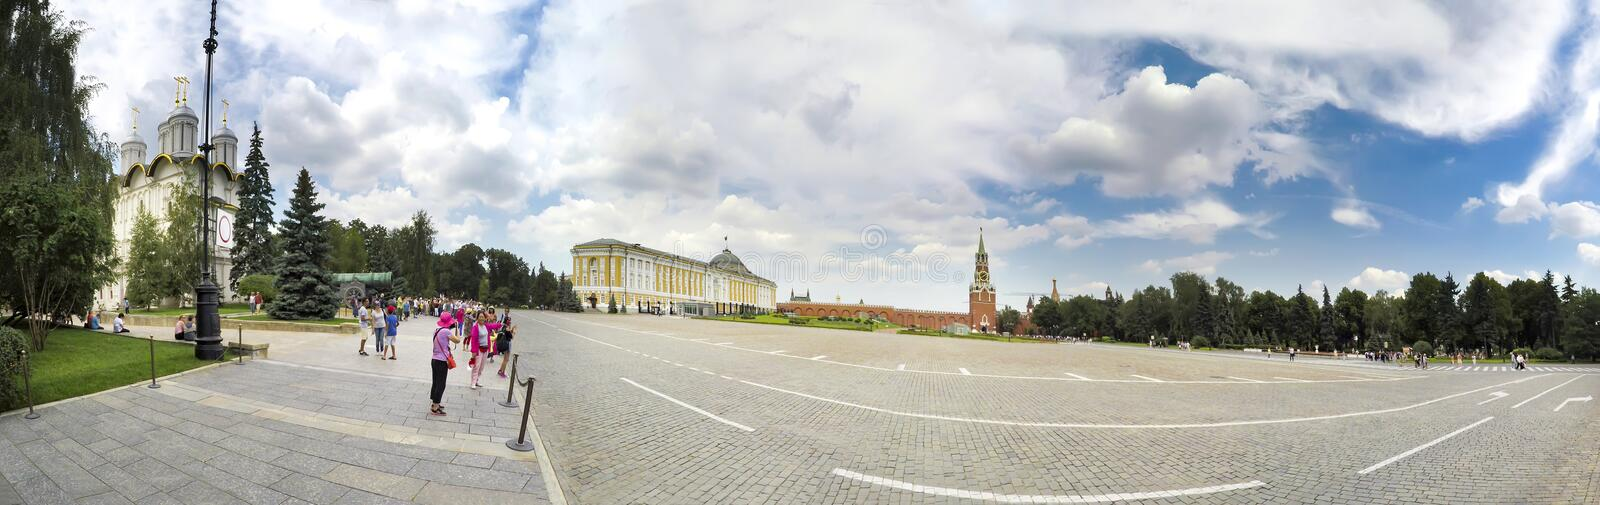 Panorama of Kremlin with Senate building in Moscow. Russia stock photos